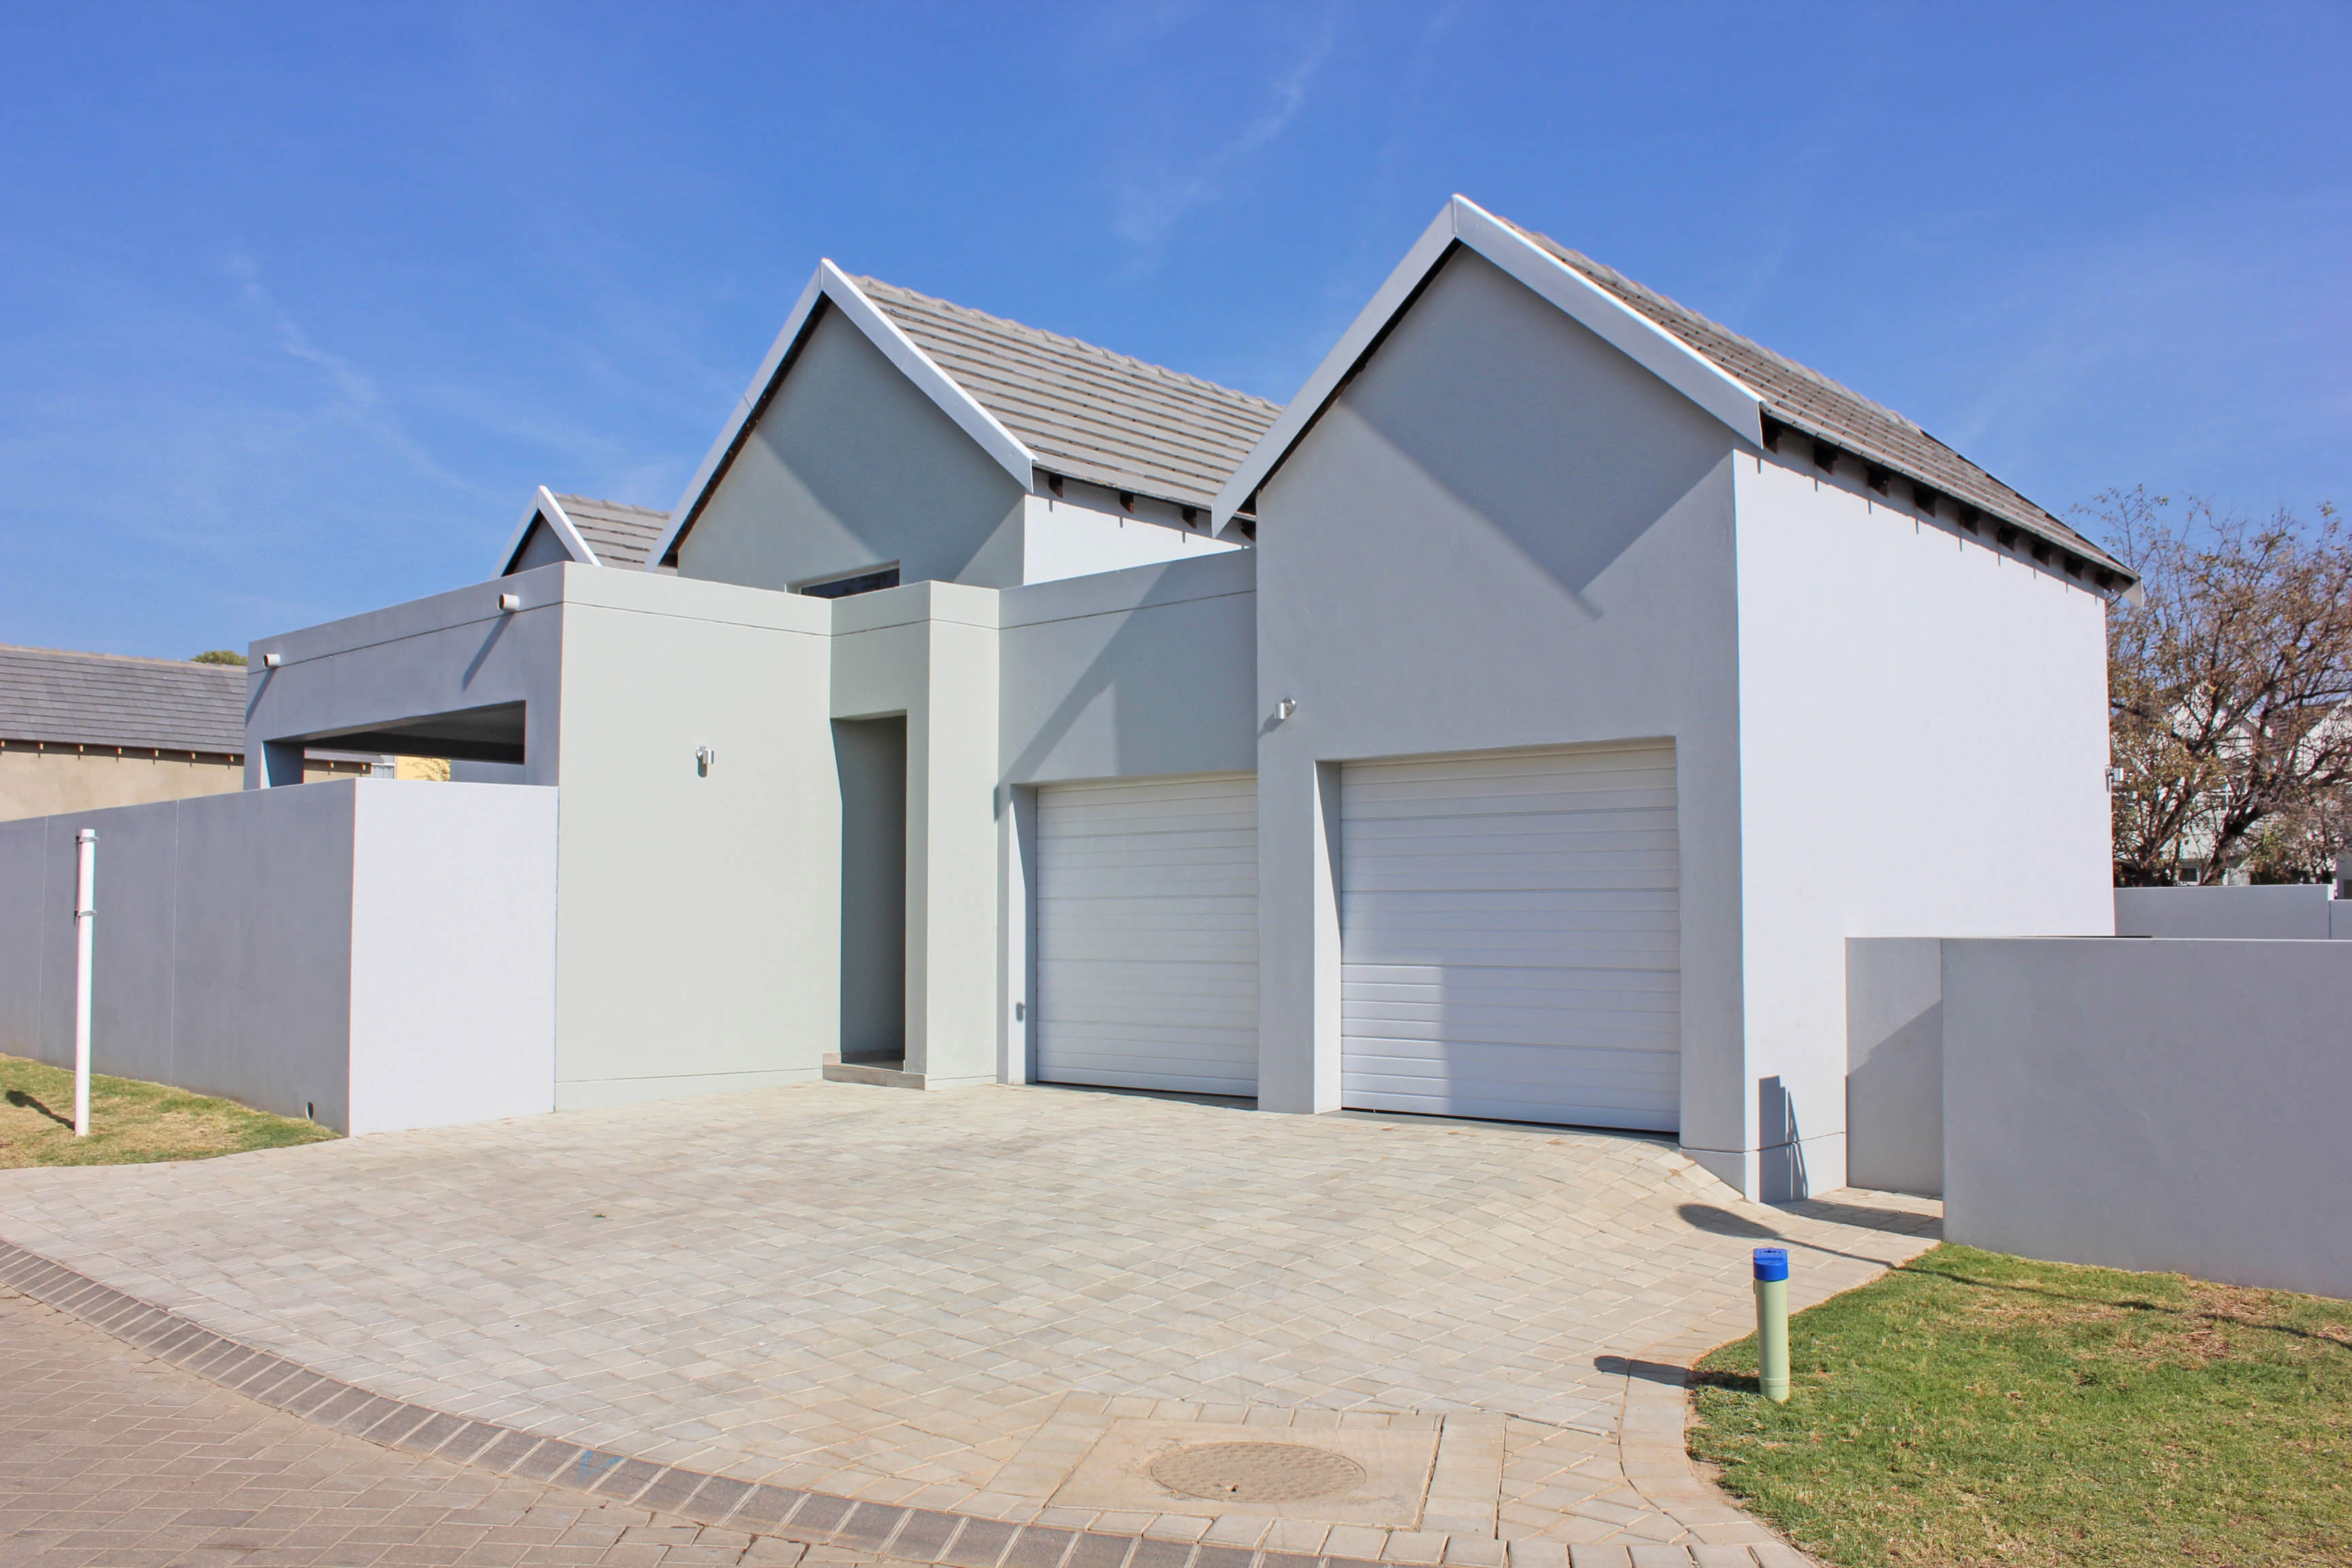 3 Bedroom Townhouse for sale in North Riding ENT0075308 : photo#3